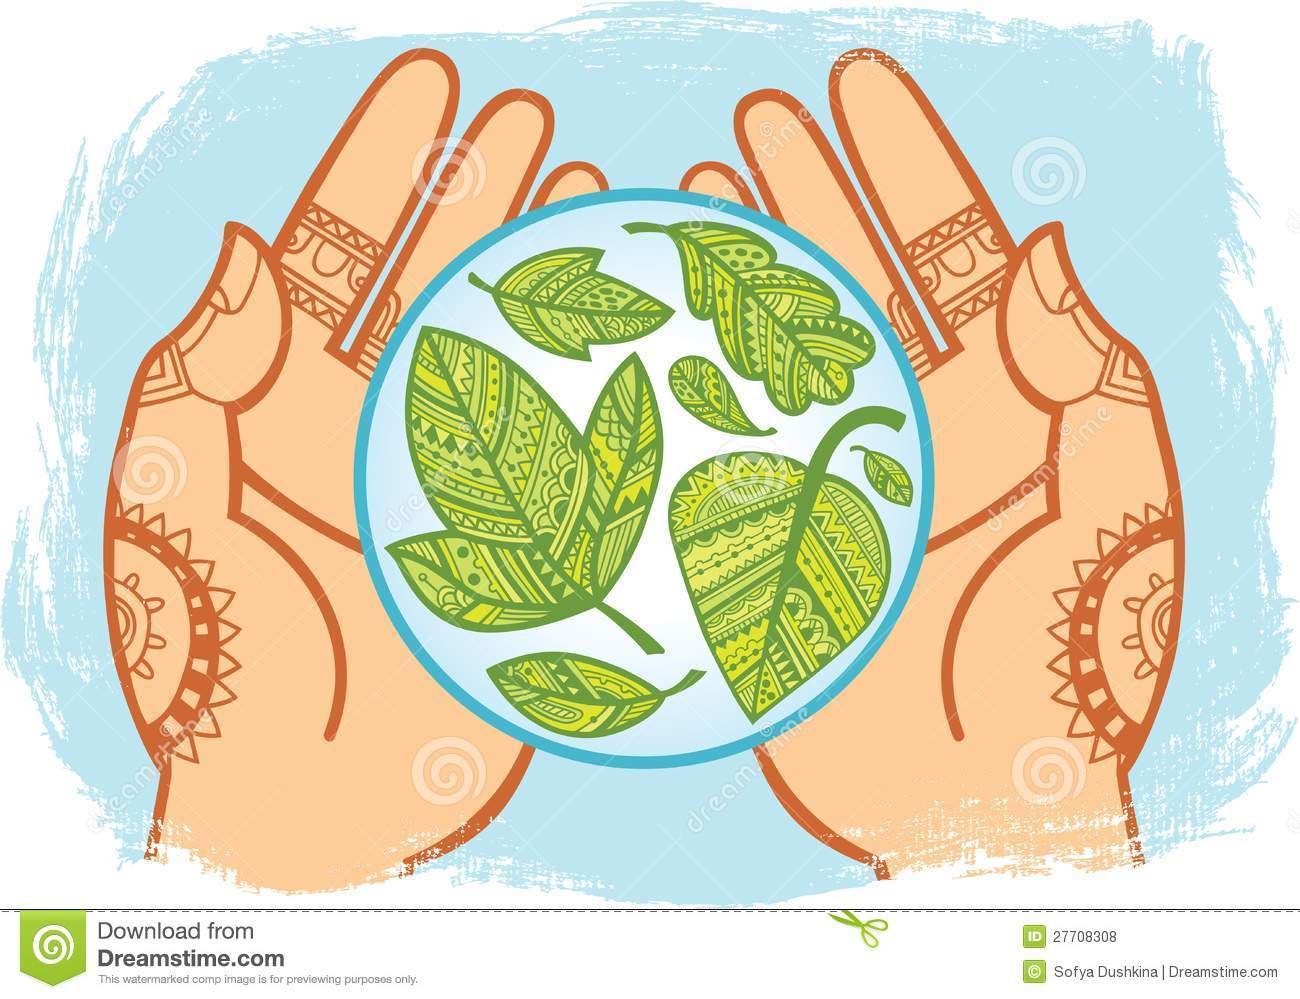 Taking of the portal. Environment clipart care